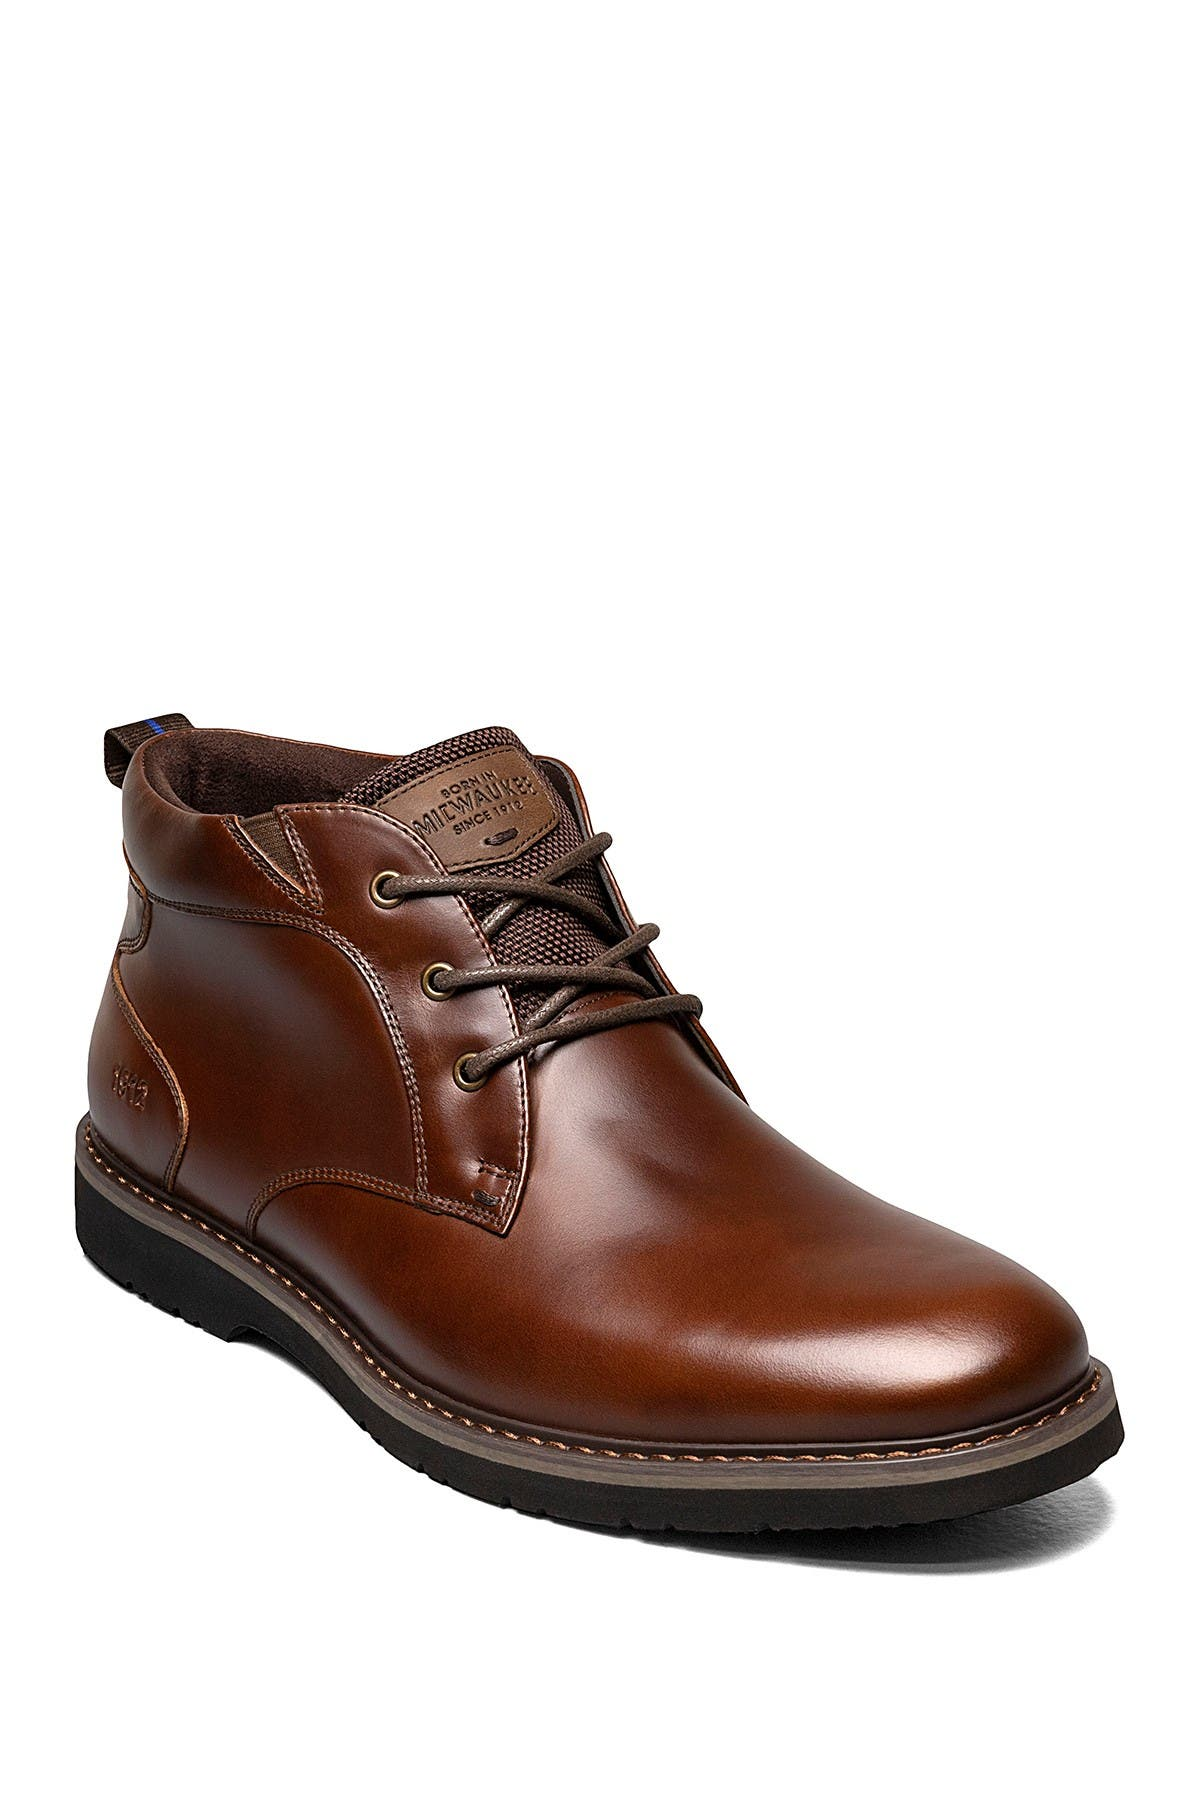 Image of NUNN BUSH Denali Waterproof Leather Plain Toe Chukka Boot - Wide Width Available